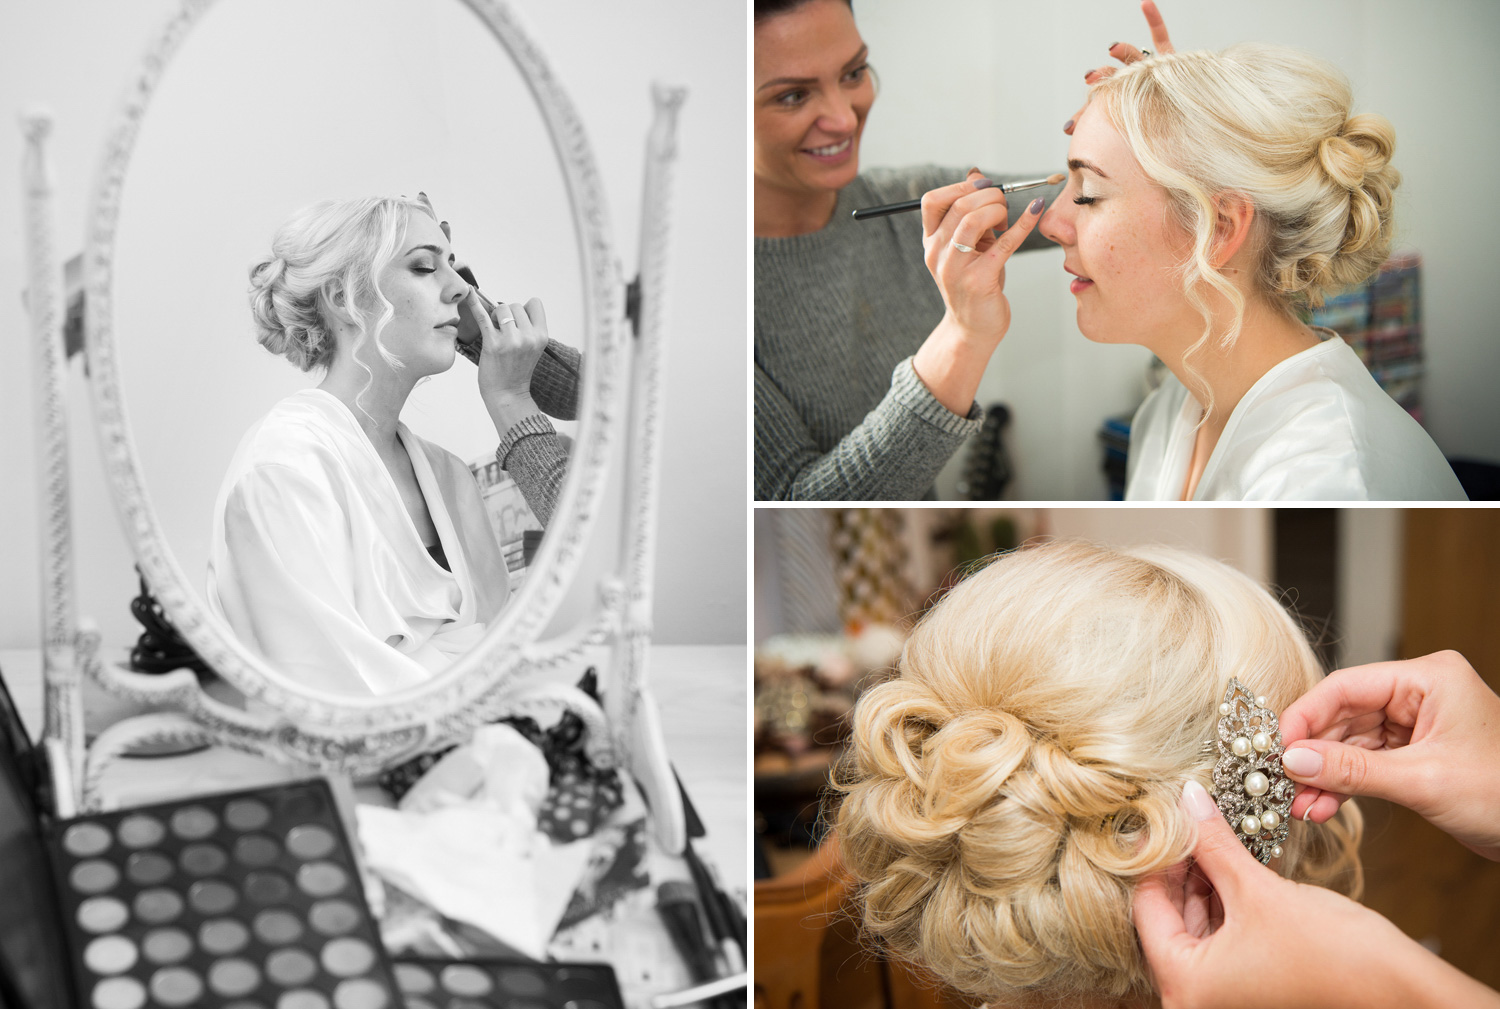 Bride getting ready photographs